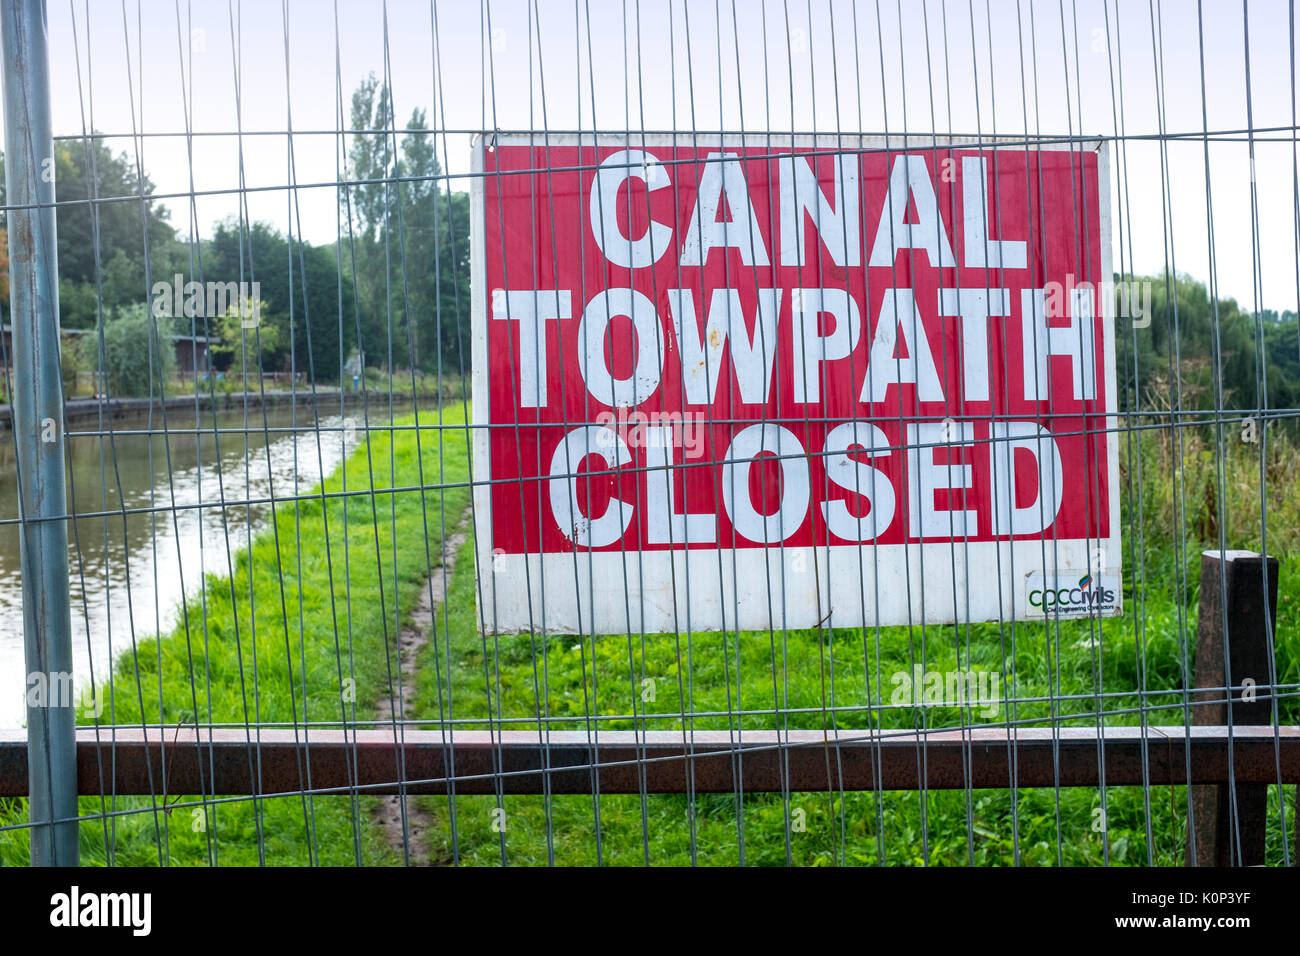 Towpath closed sign on the Trent and Mersey Canal in Cheshire UK - Stock Image